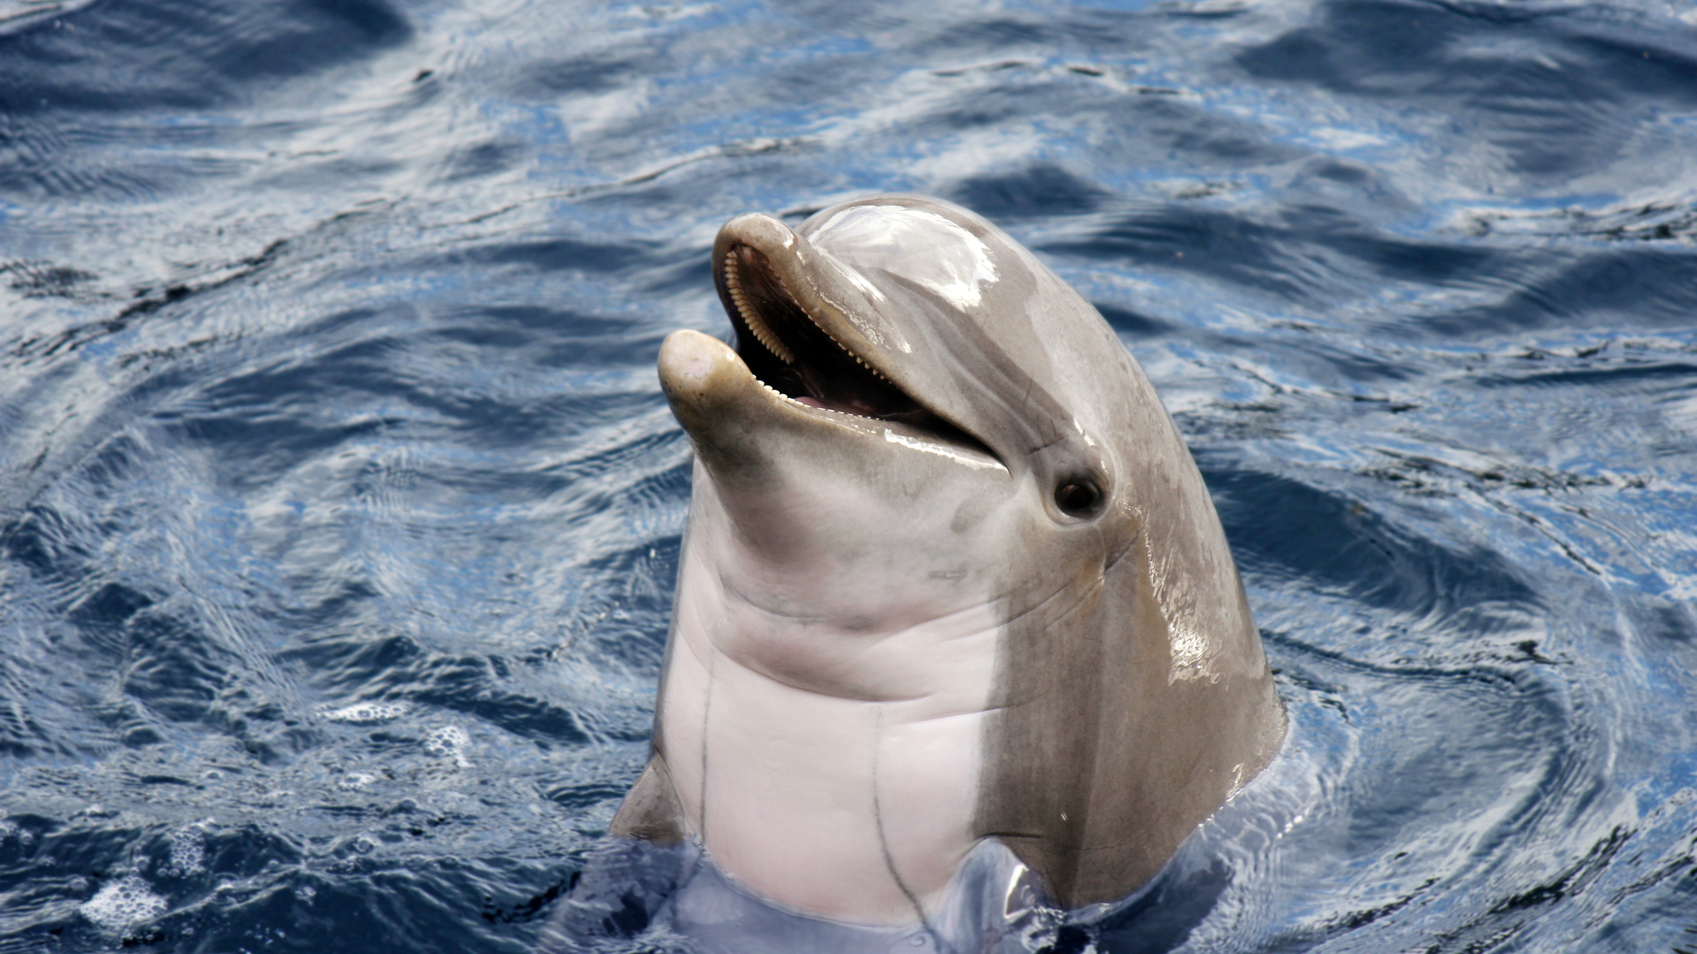 A dolphin surfaces in the sea.